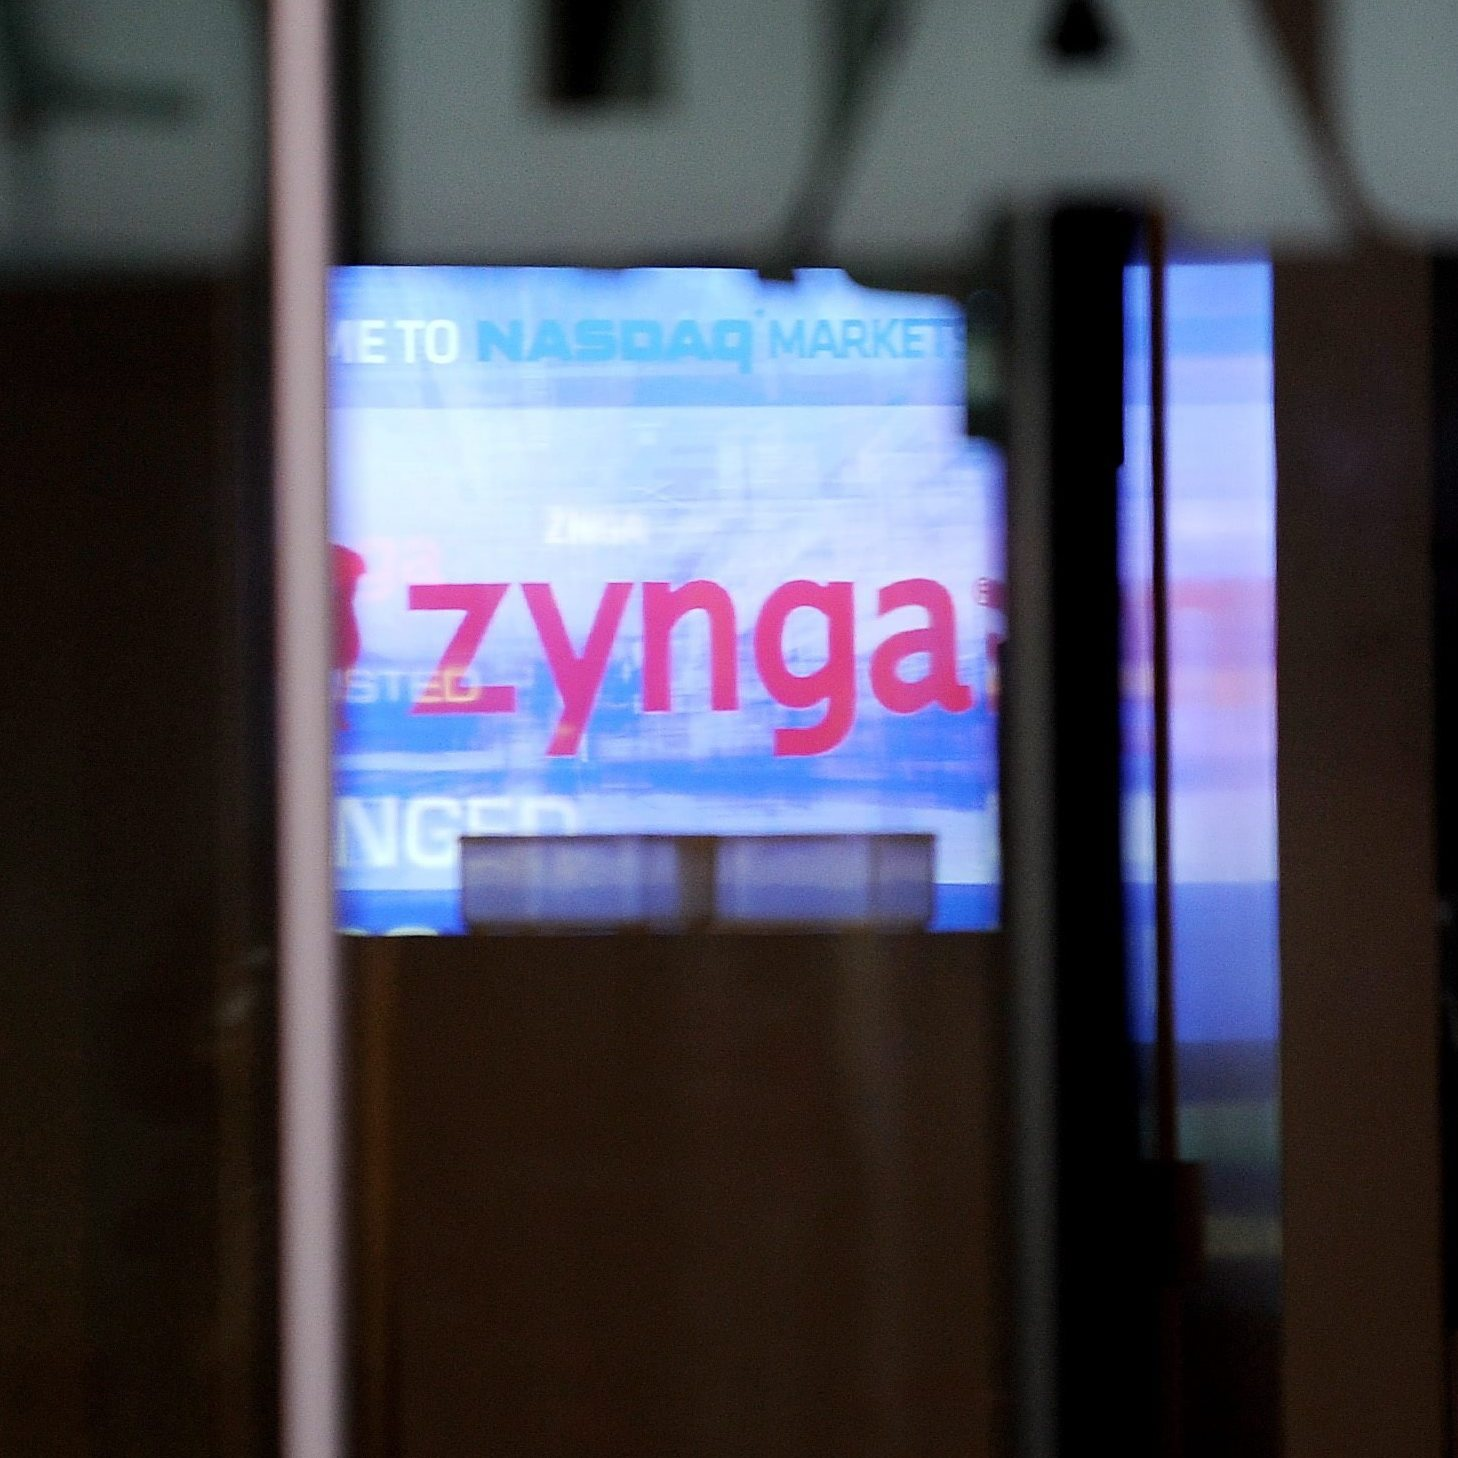 The display at the NASDAQ building promotes the IPO of online game developer Zynga.